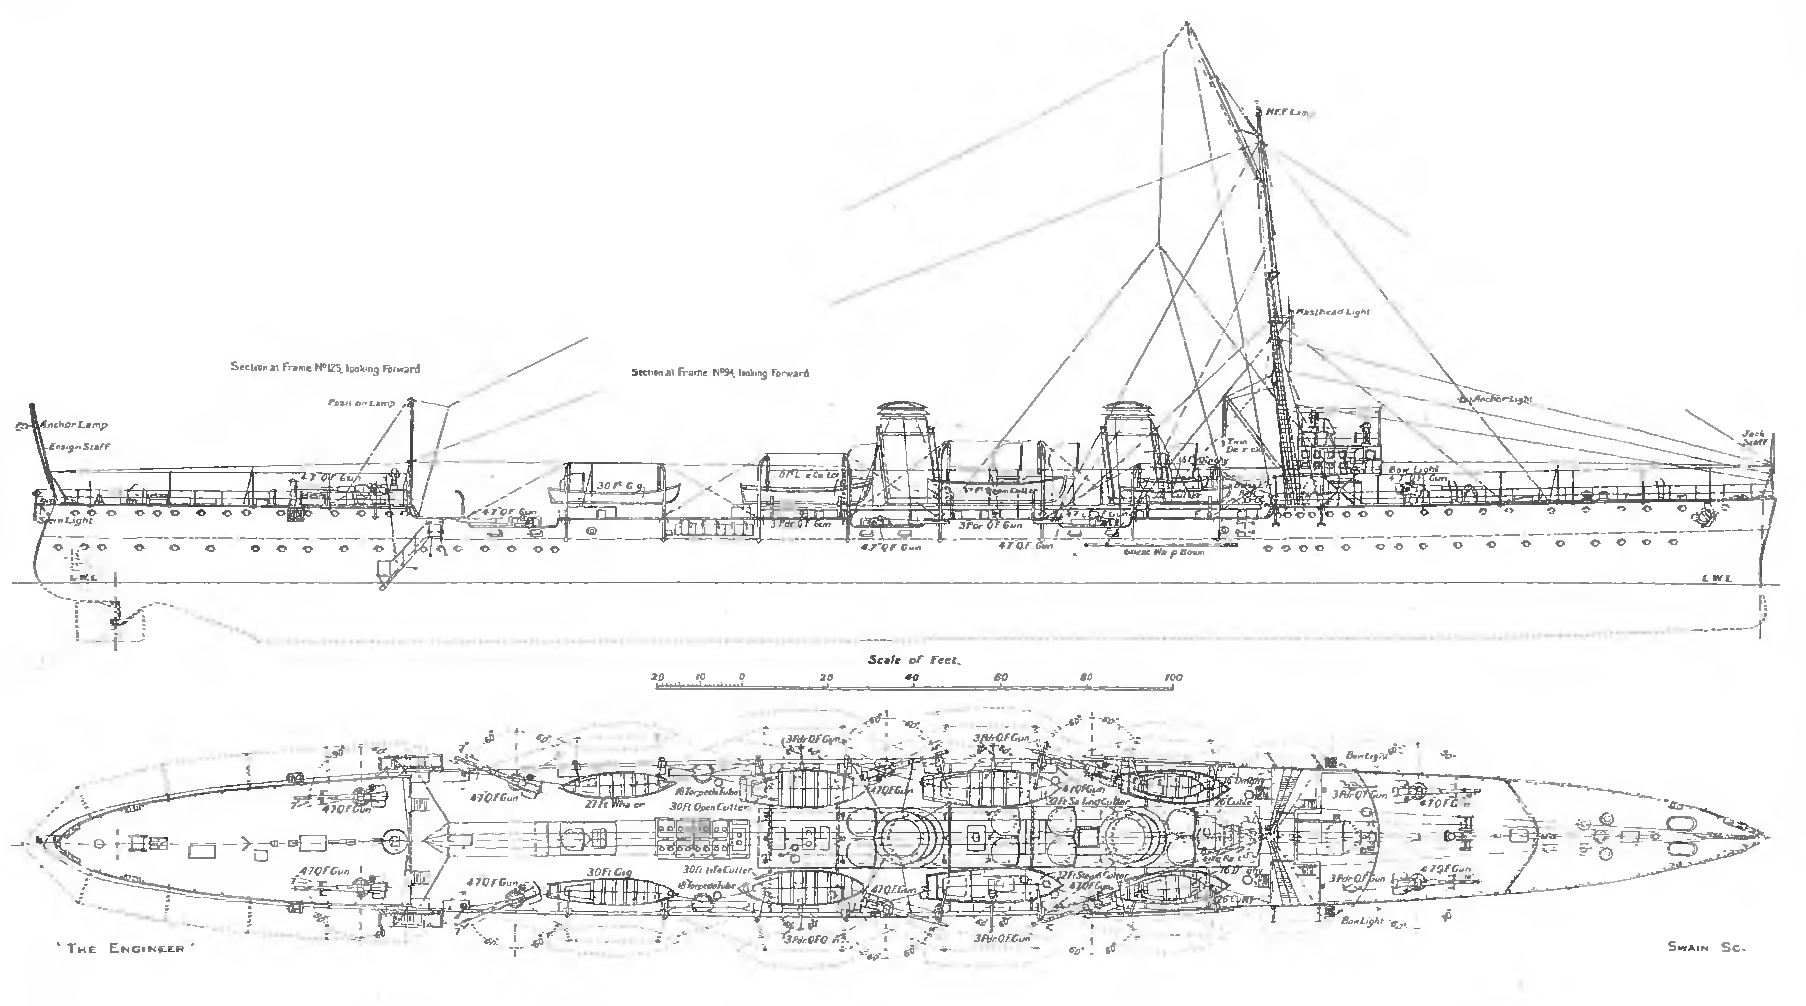 Line Drawing Wikipedia : Bahia class cruiser military wiki fandom powered by wikia